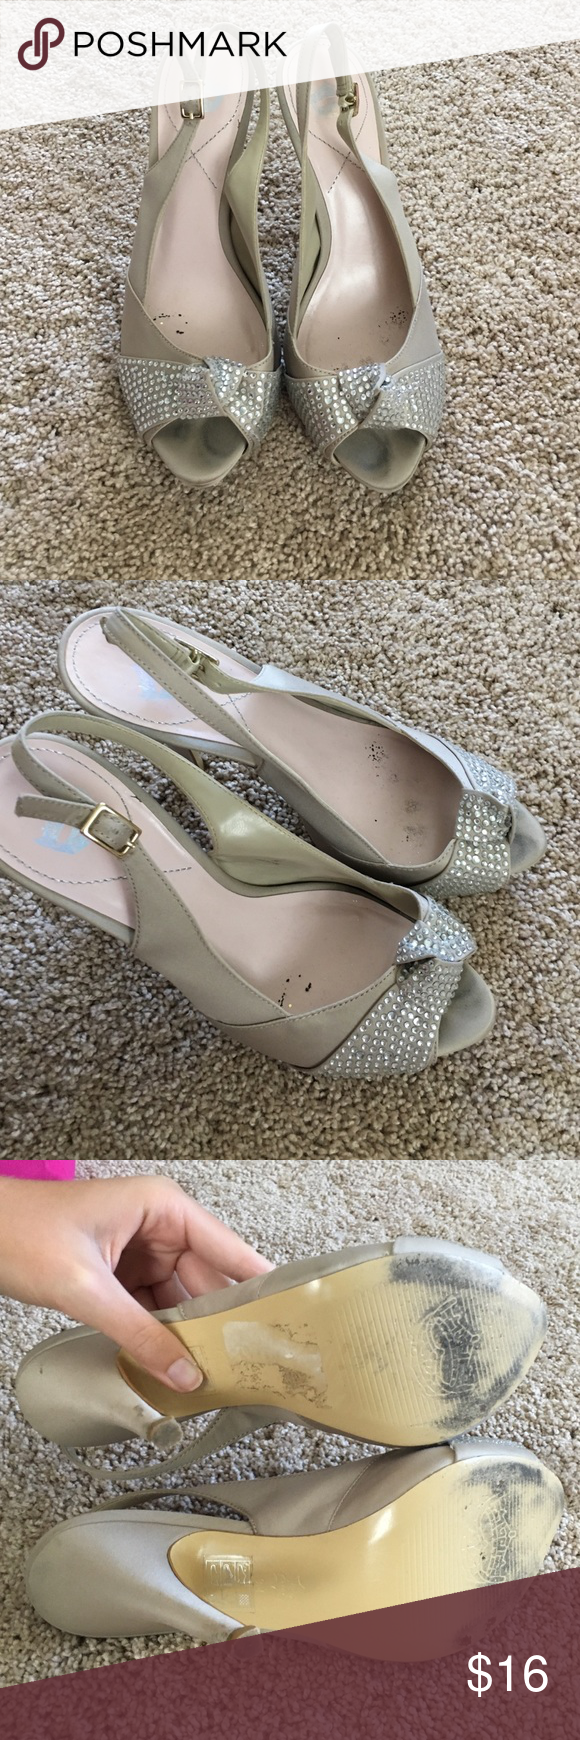 "Nude sparkly heels homecoming Open toed with adjustable back strap. Great for school dances! 4 1/2"" heel Shoes Heels"